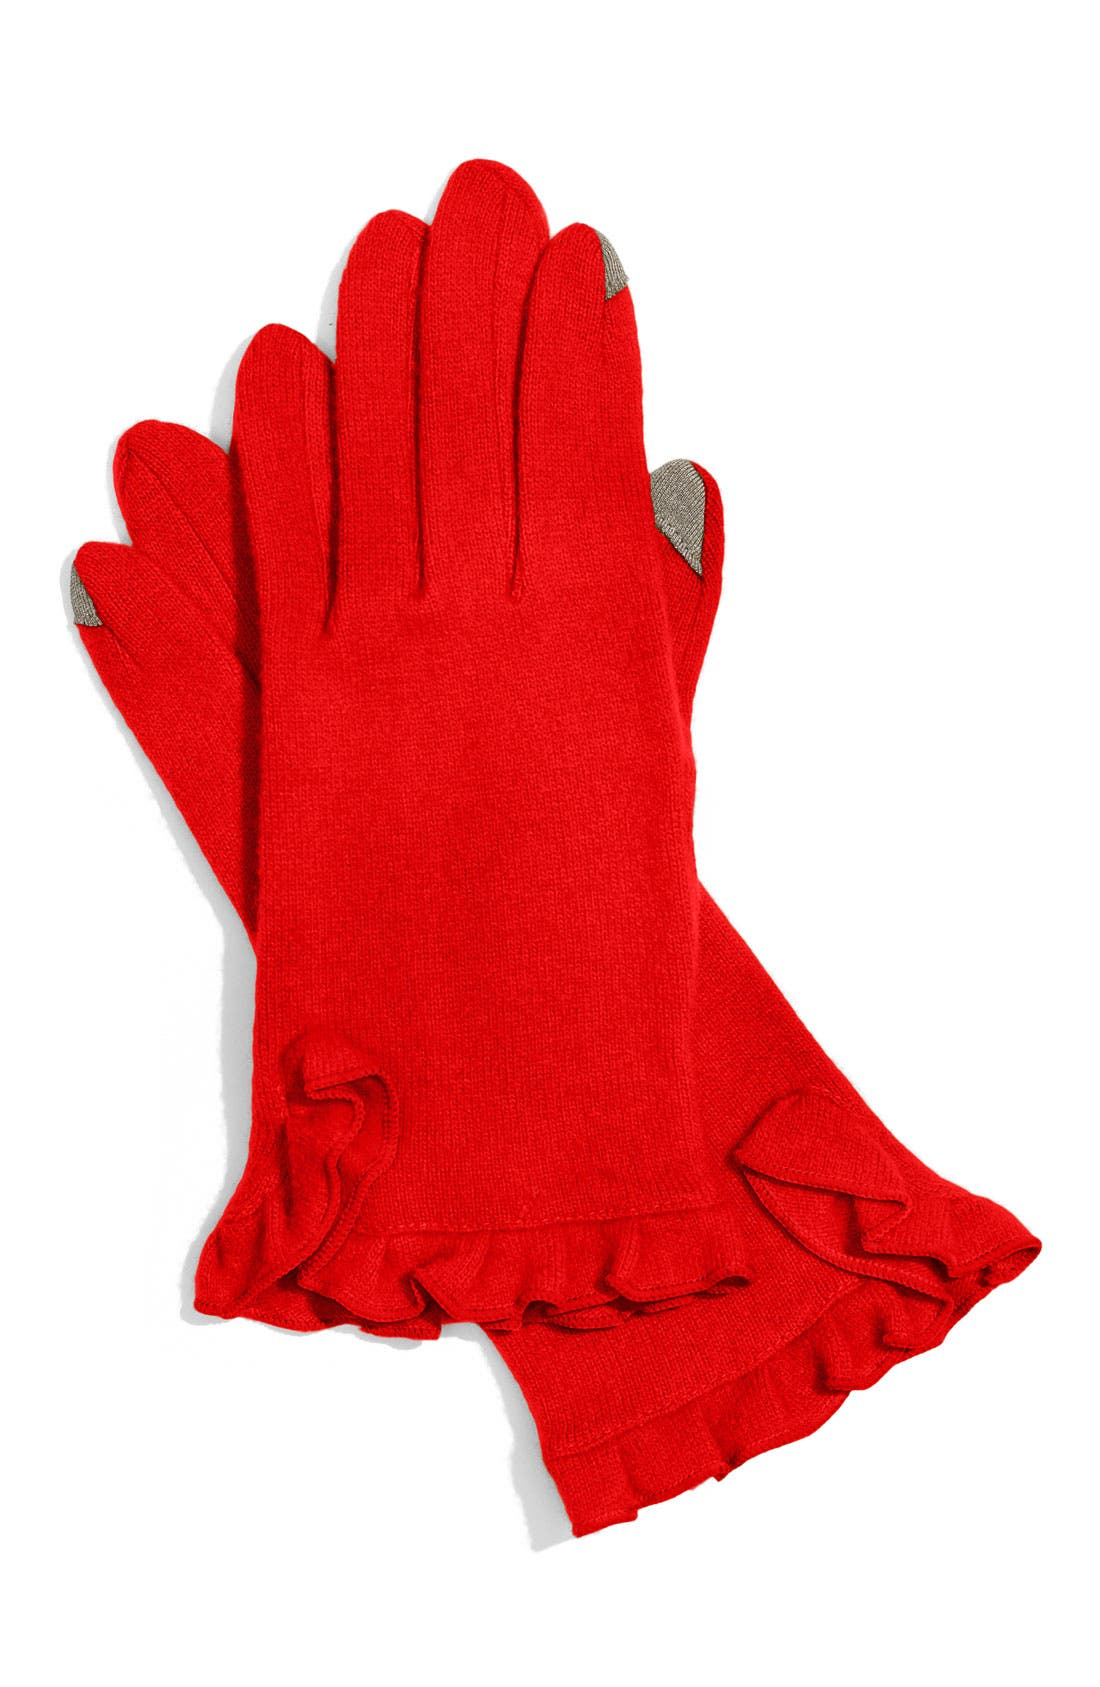 'Touch' Tech Gloves,                         Main,                         color, Lacquer Red